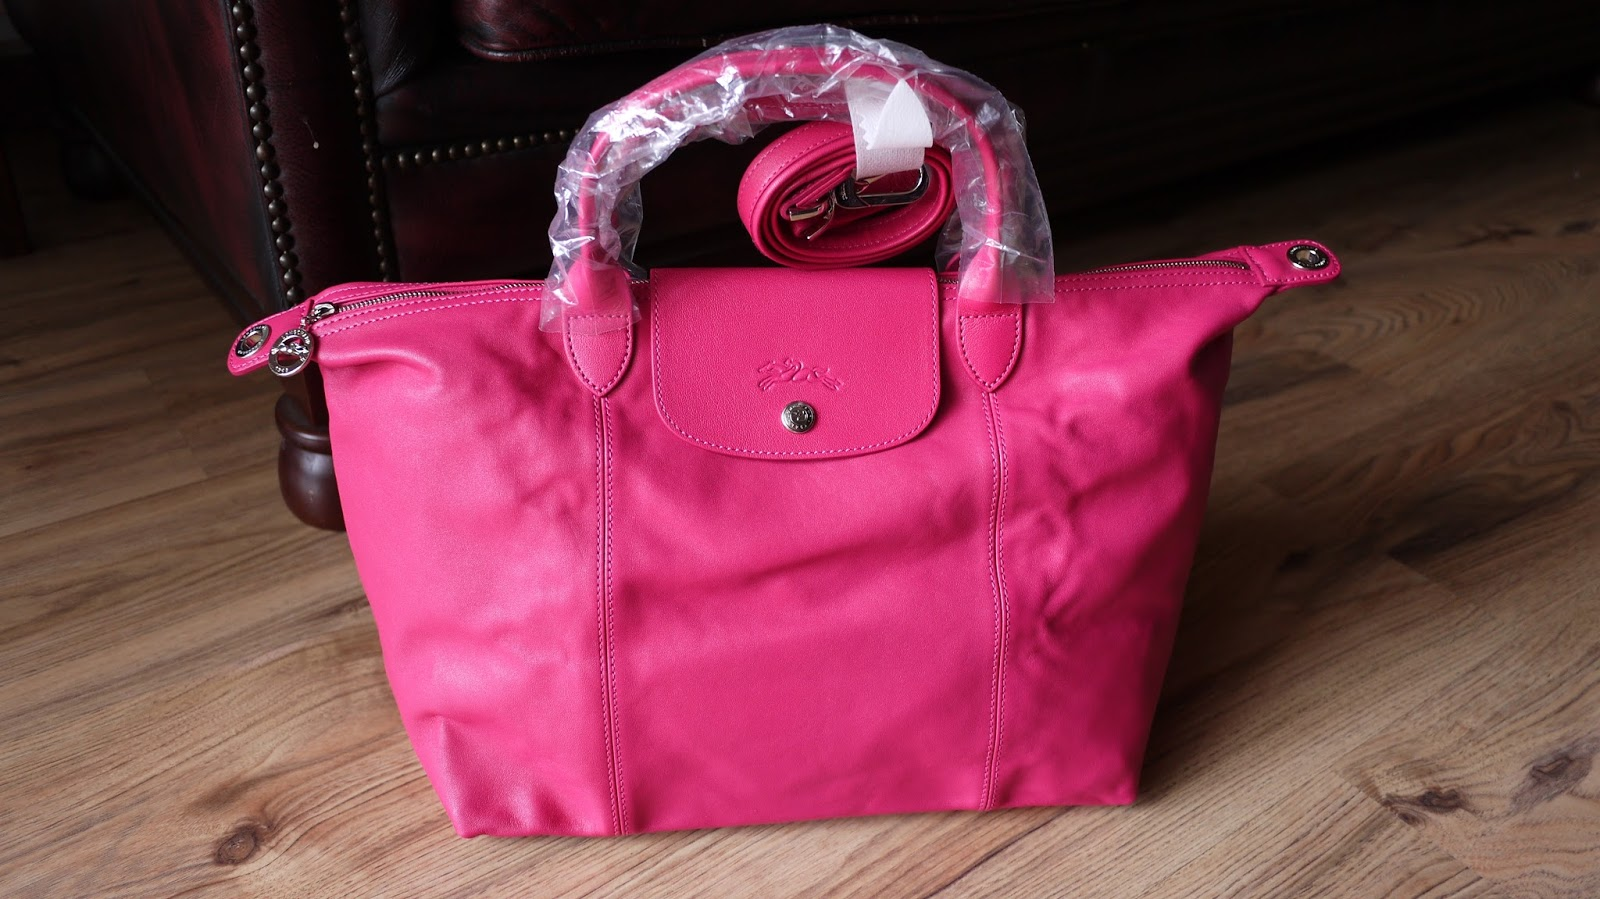 0dc9c20cbdd06 Longchamp Le Pliage Medium Pink Leather Bag